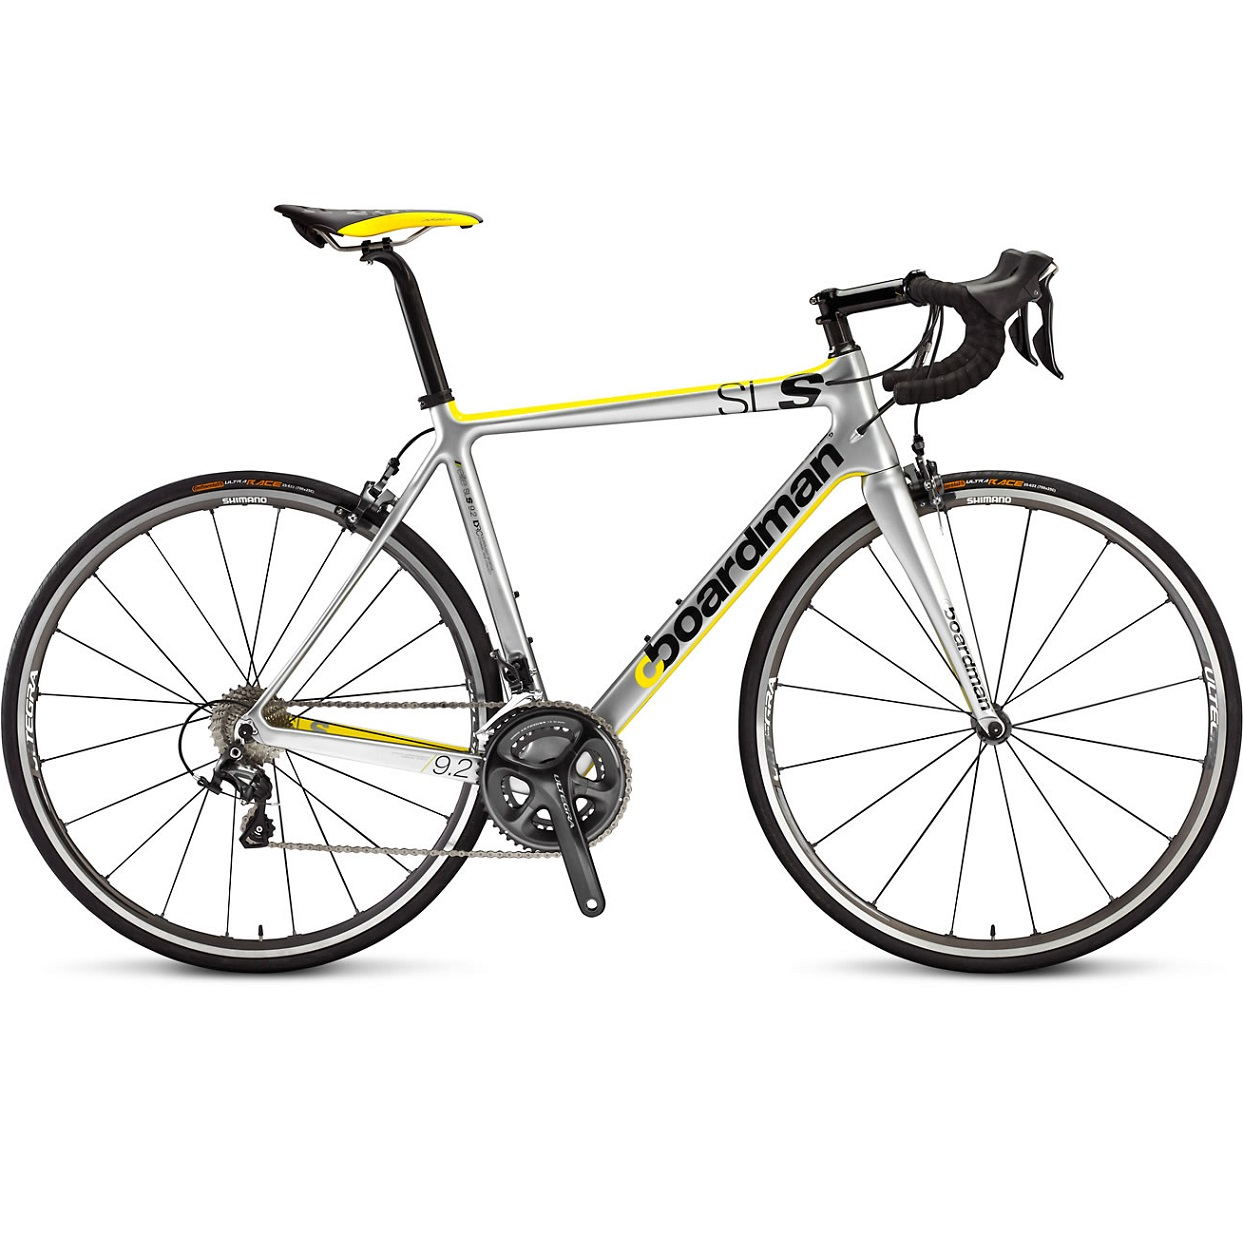 Boardman SLS 9.2 Ultegra 11 Carbon Road Bike